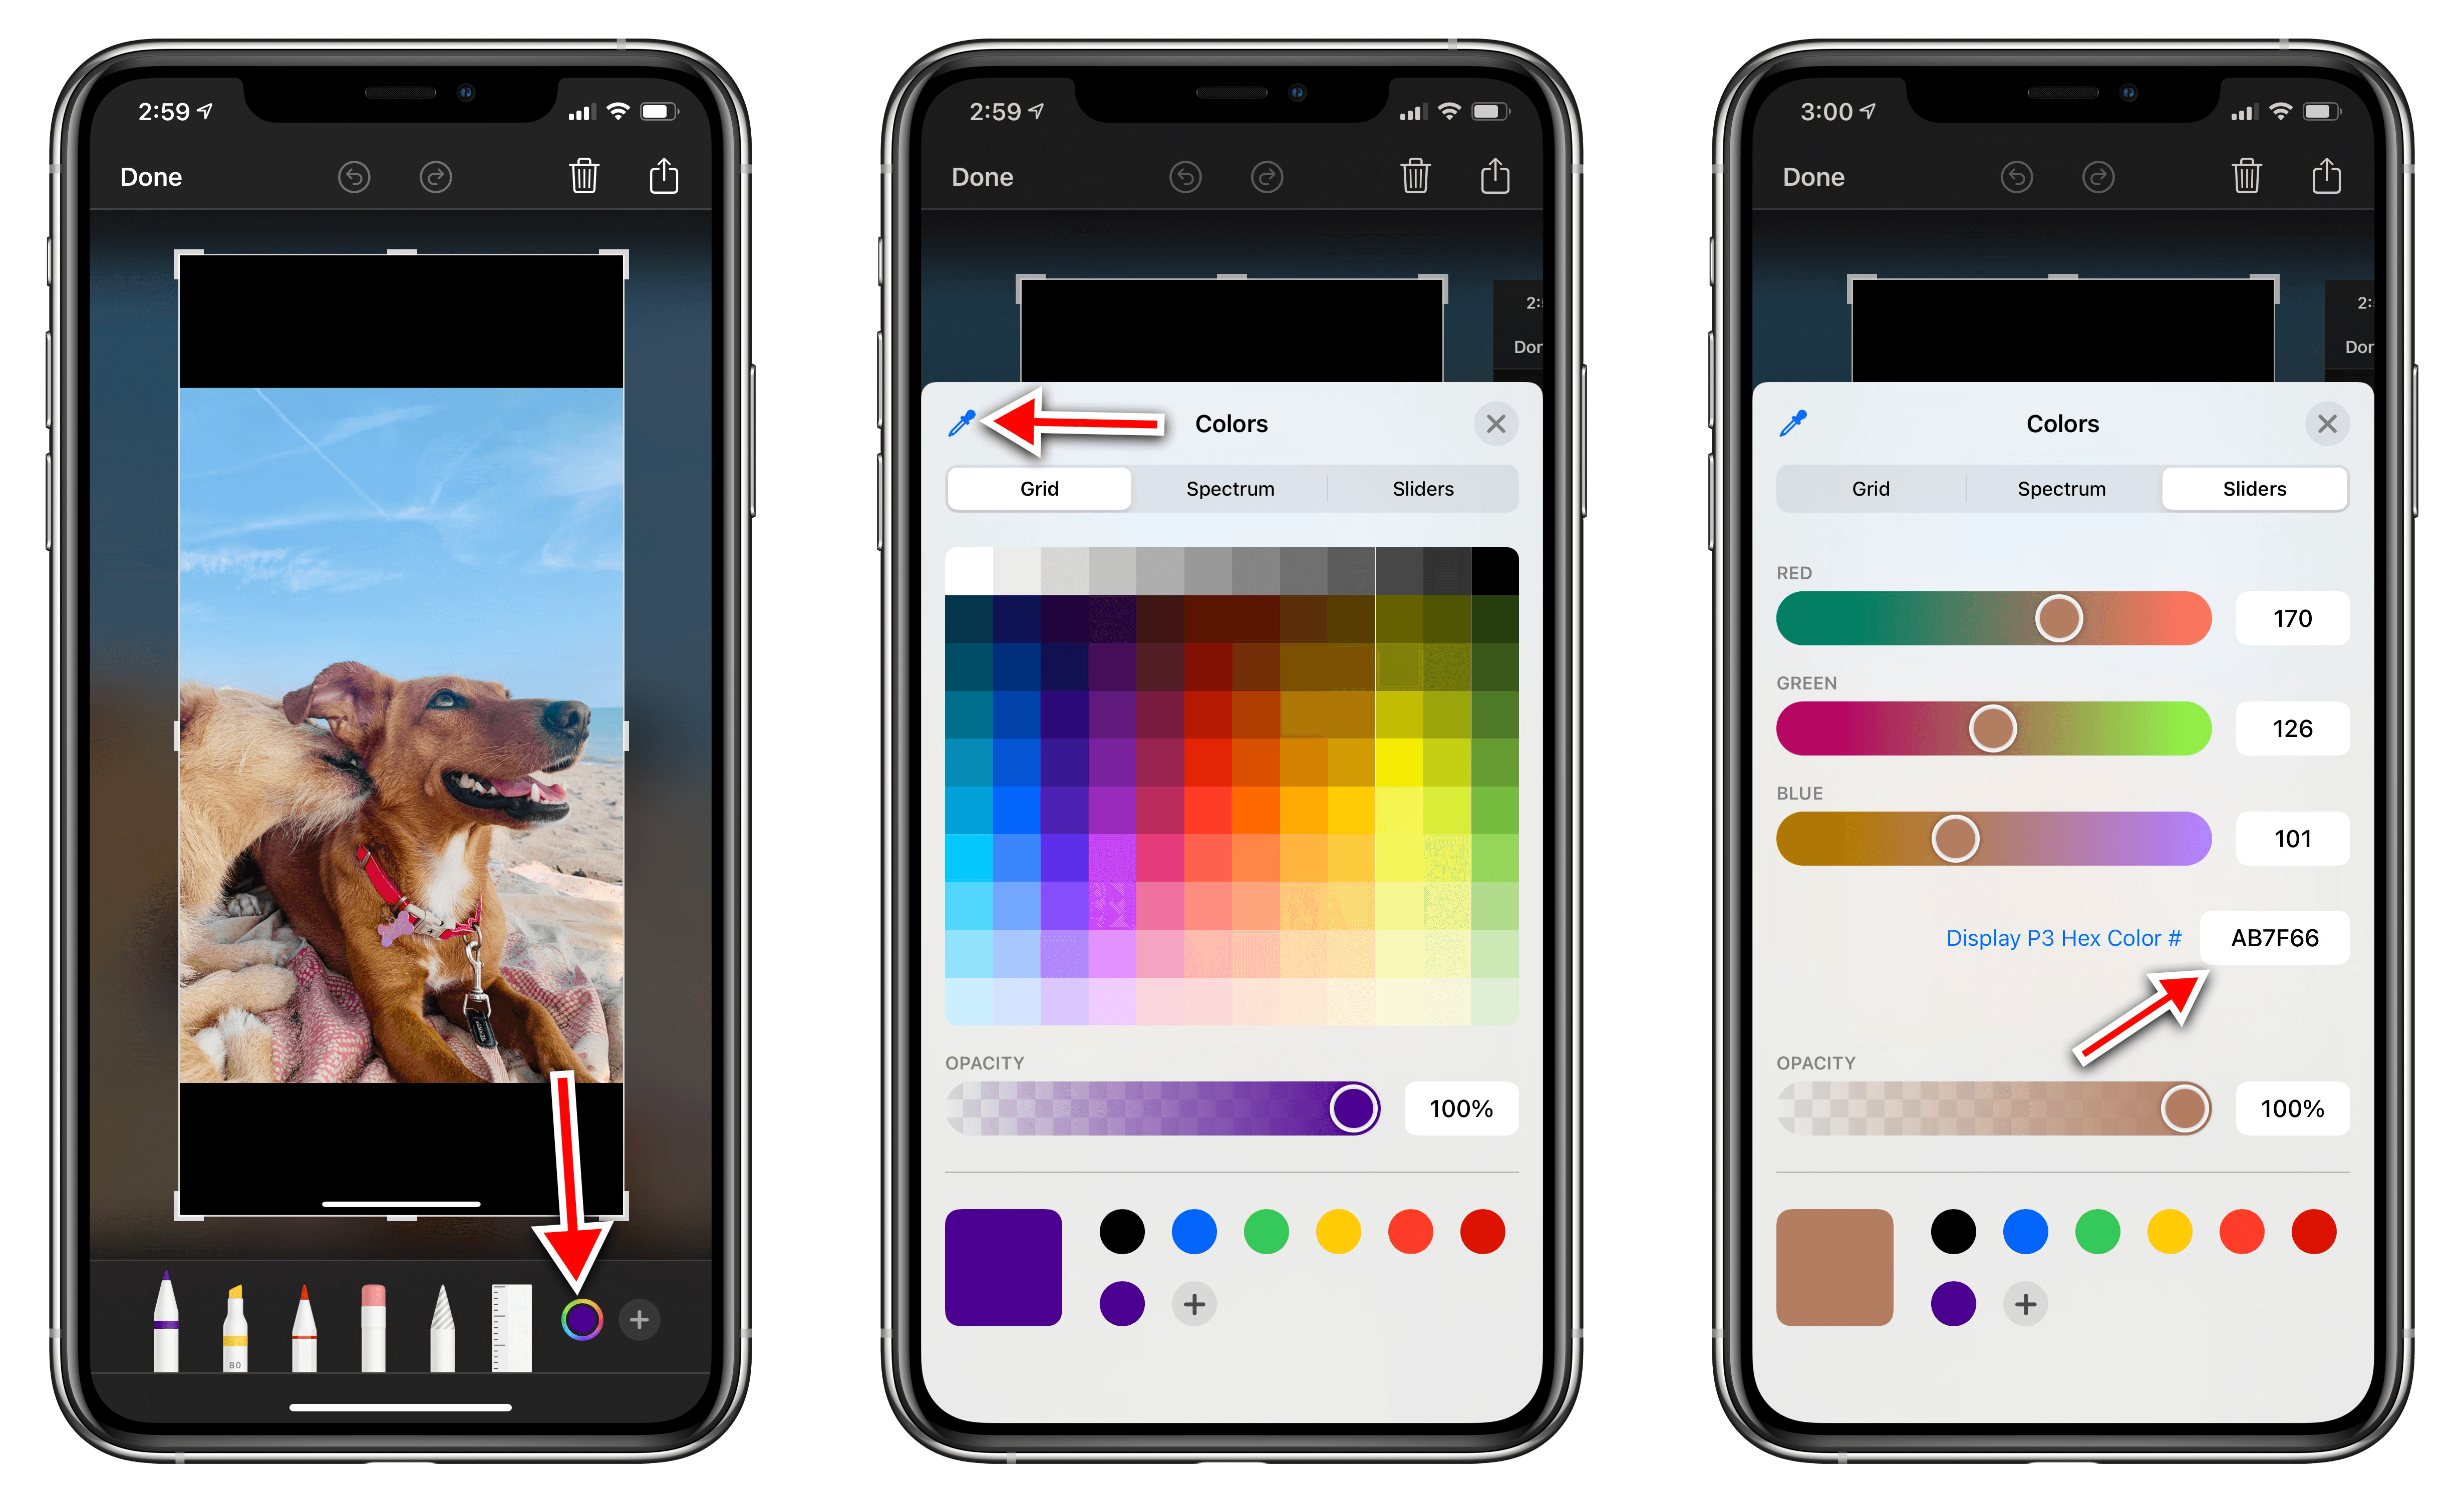 You can save any color from any photo using iOS 14's new color picker.